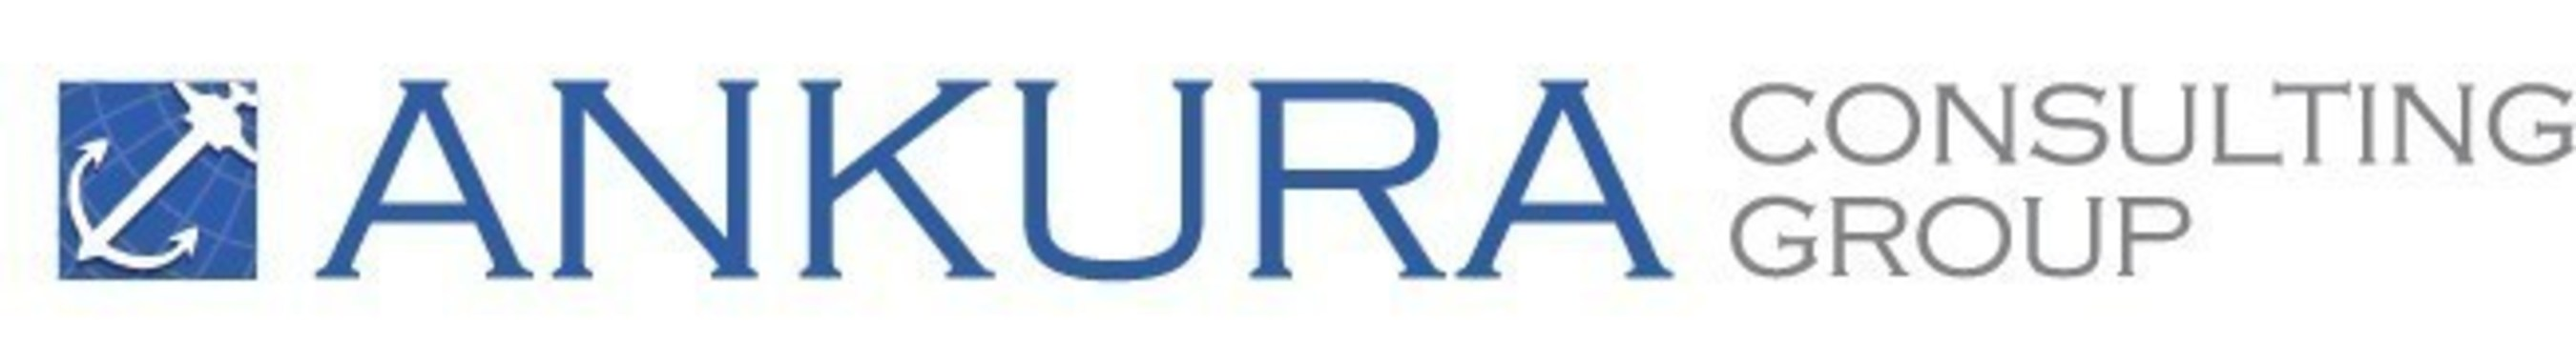 Ankura Consulting Group Agrees to Strategic Combination with ARPC (PRNewsFoto/Ankura Consulting Group)